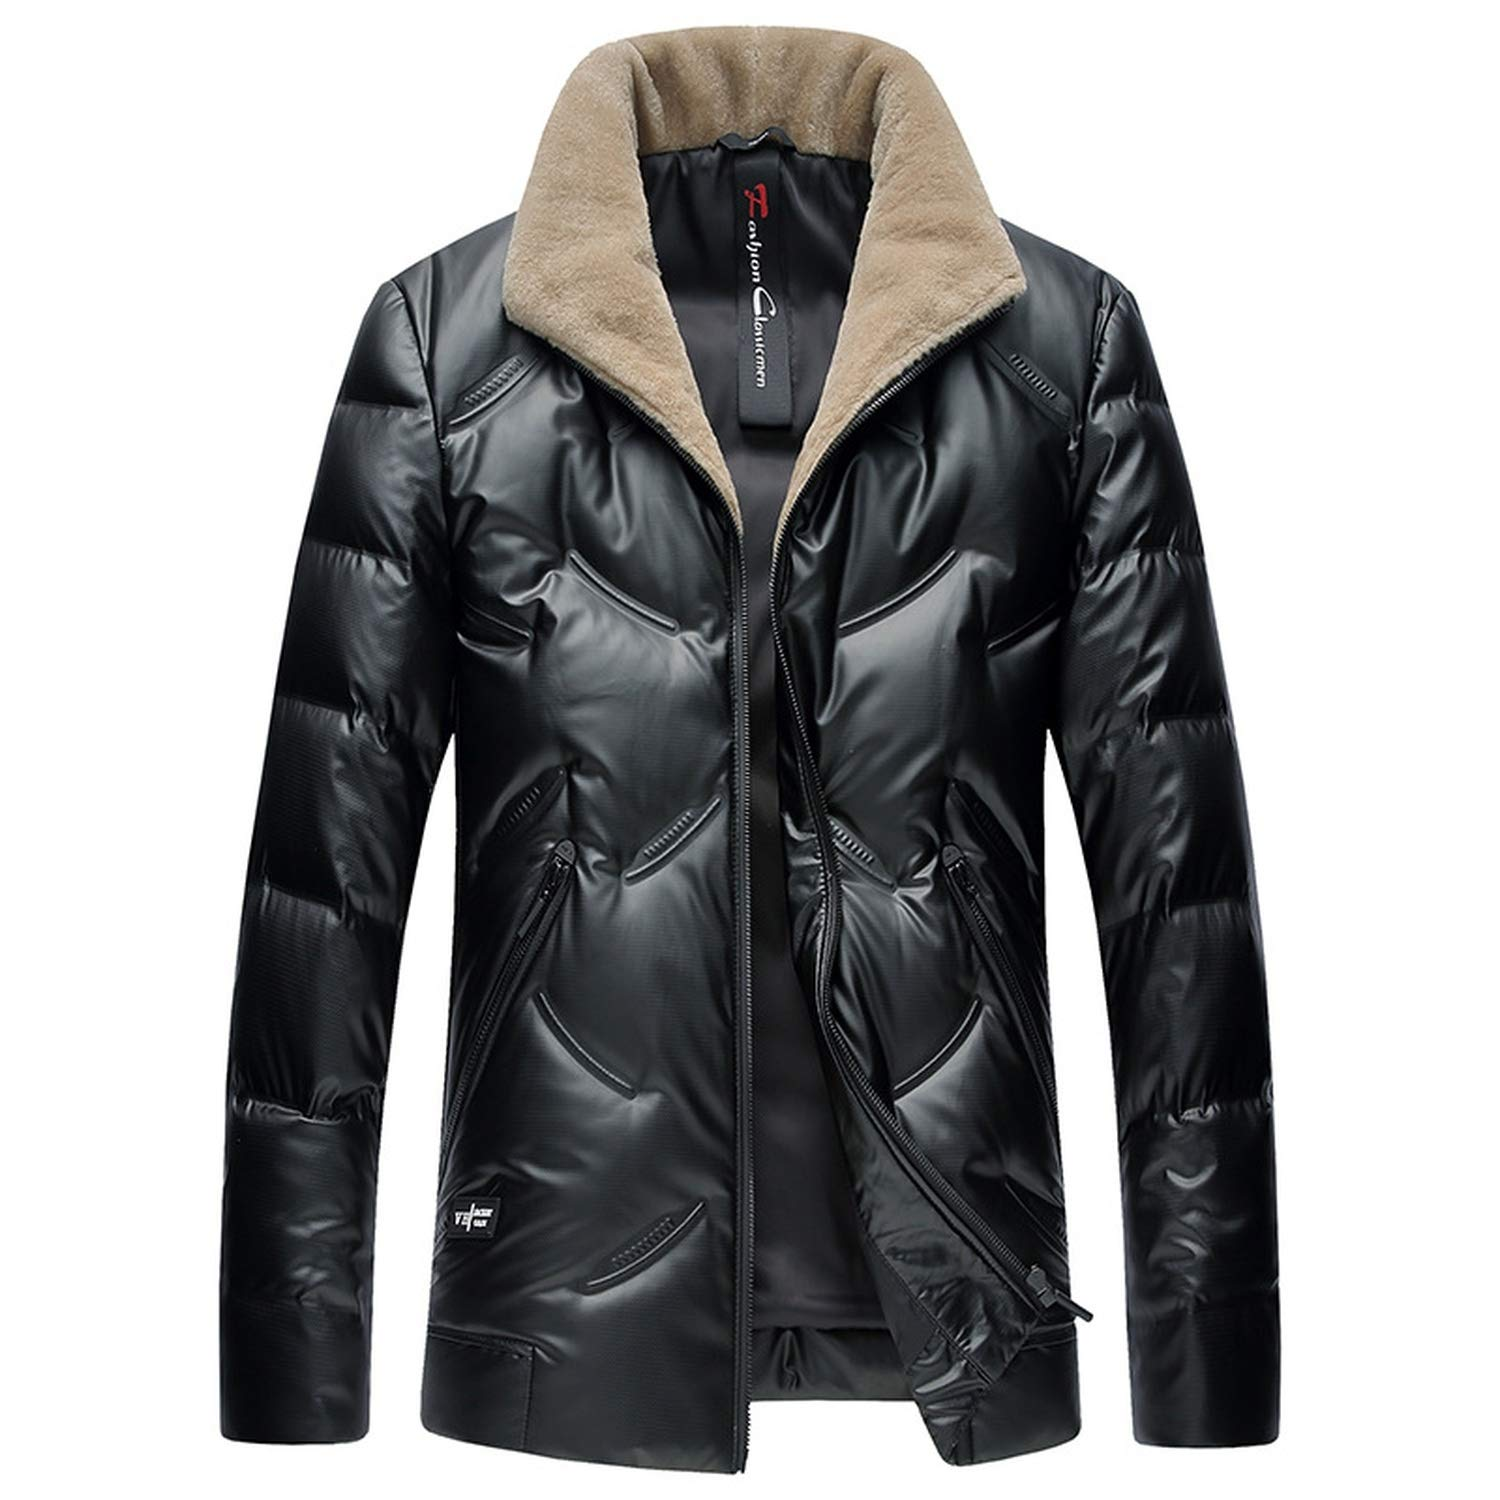 Black Warm Down Jacket Waterproof Winter 90% White Duck Down Outwear 100% Real Wool Collar Coat